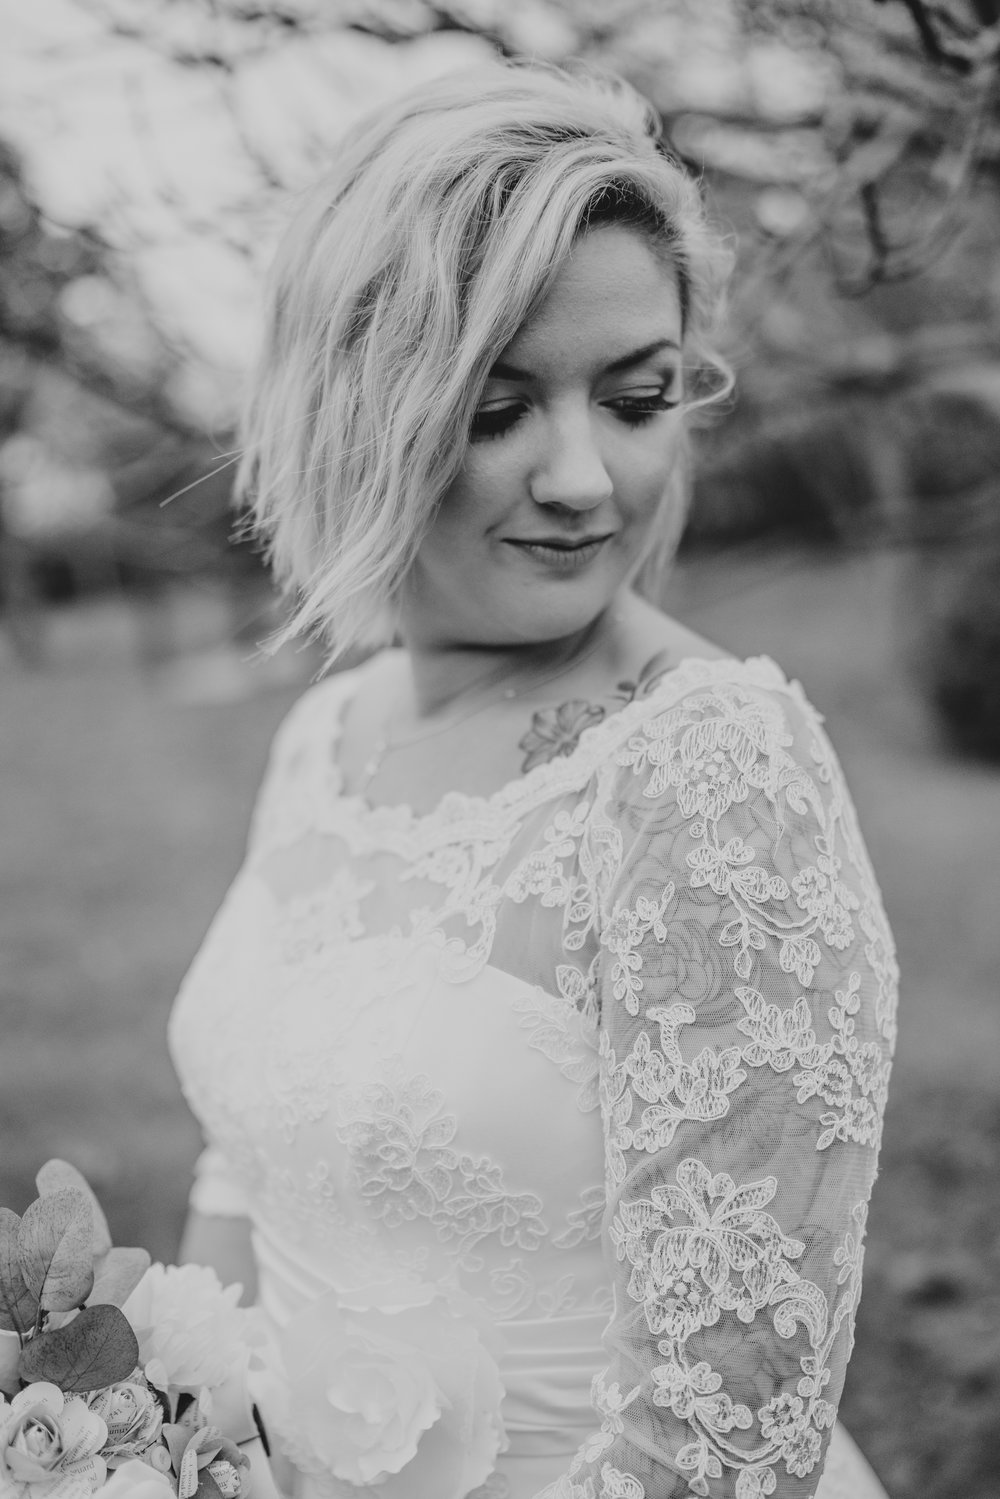 rhia-james-rustic-crabbs-barn-vintage-50s-retro-wedding-grace-elizabeth-colchester-essex-alternative-relaxed-wedding-family-photography-devon-suffolk-norfolk-essex (92 of 138).jpg